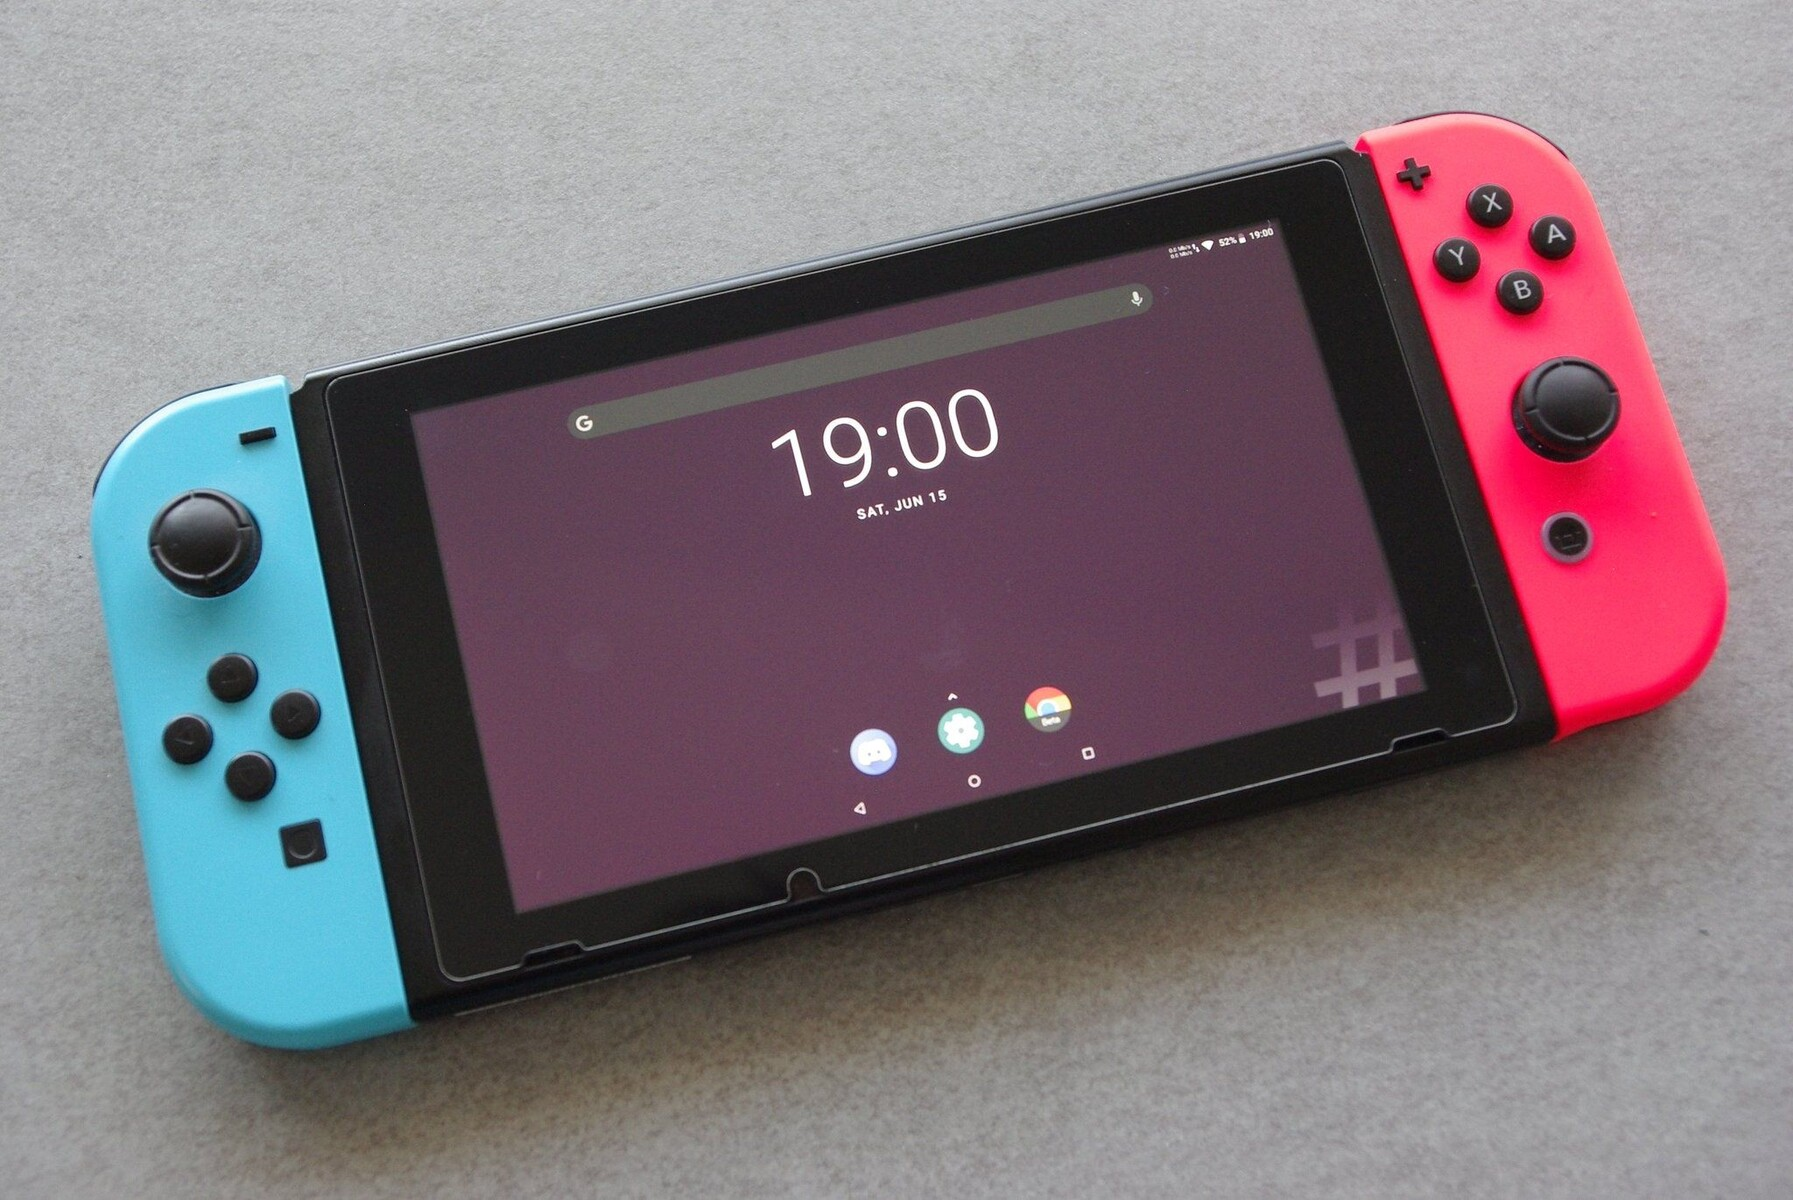 At last - you can run Android on your Nintendo Switch